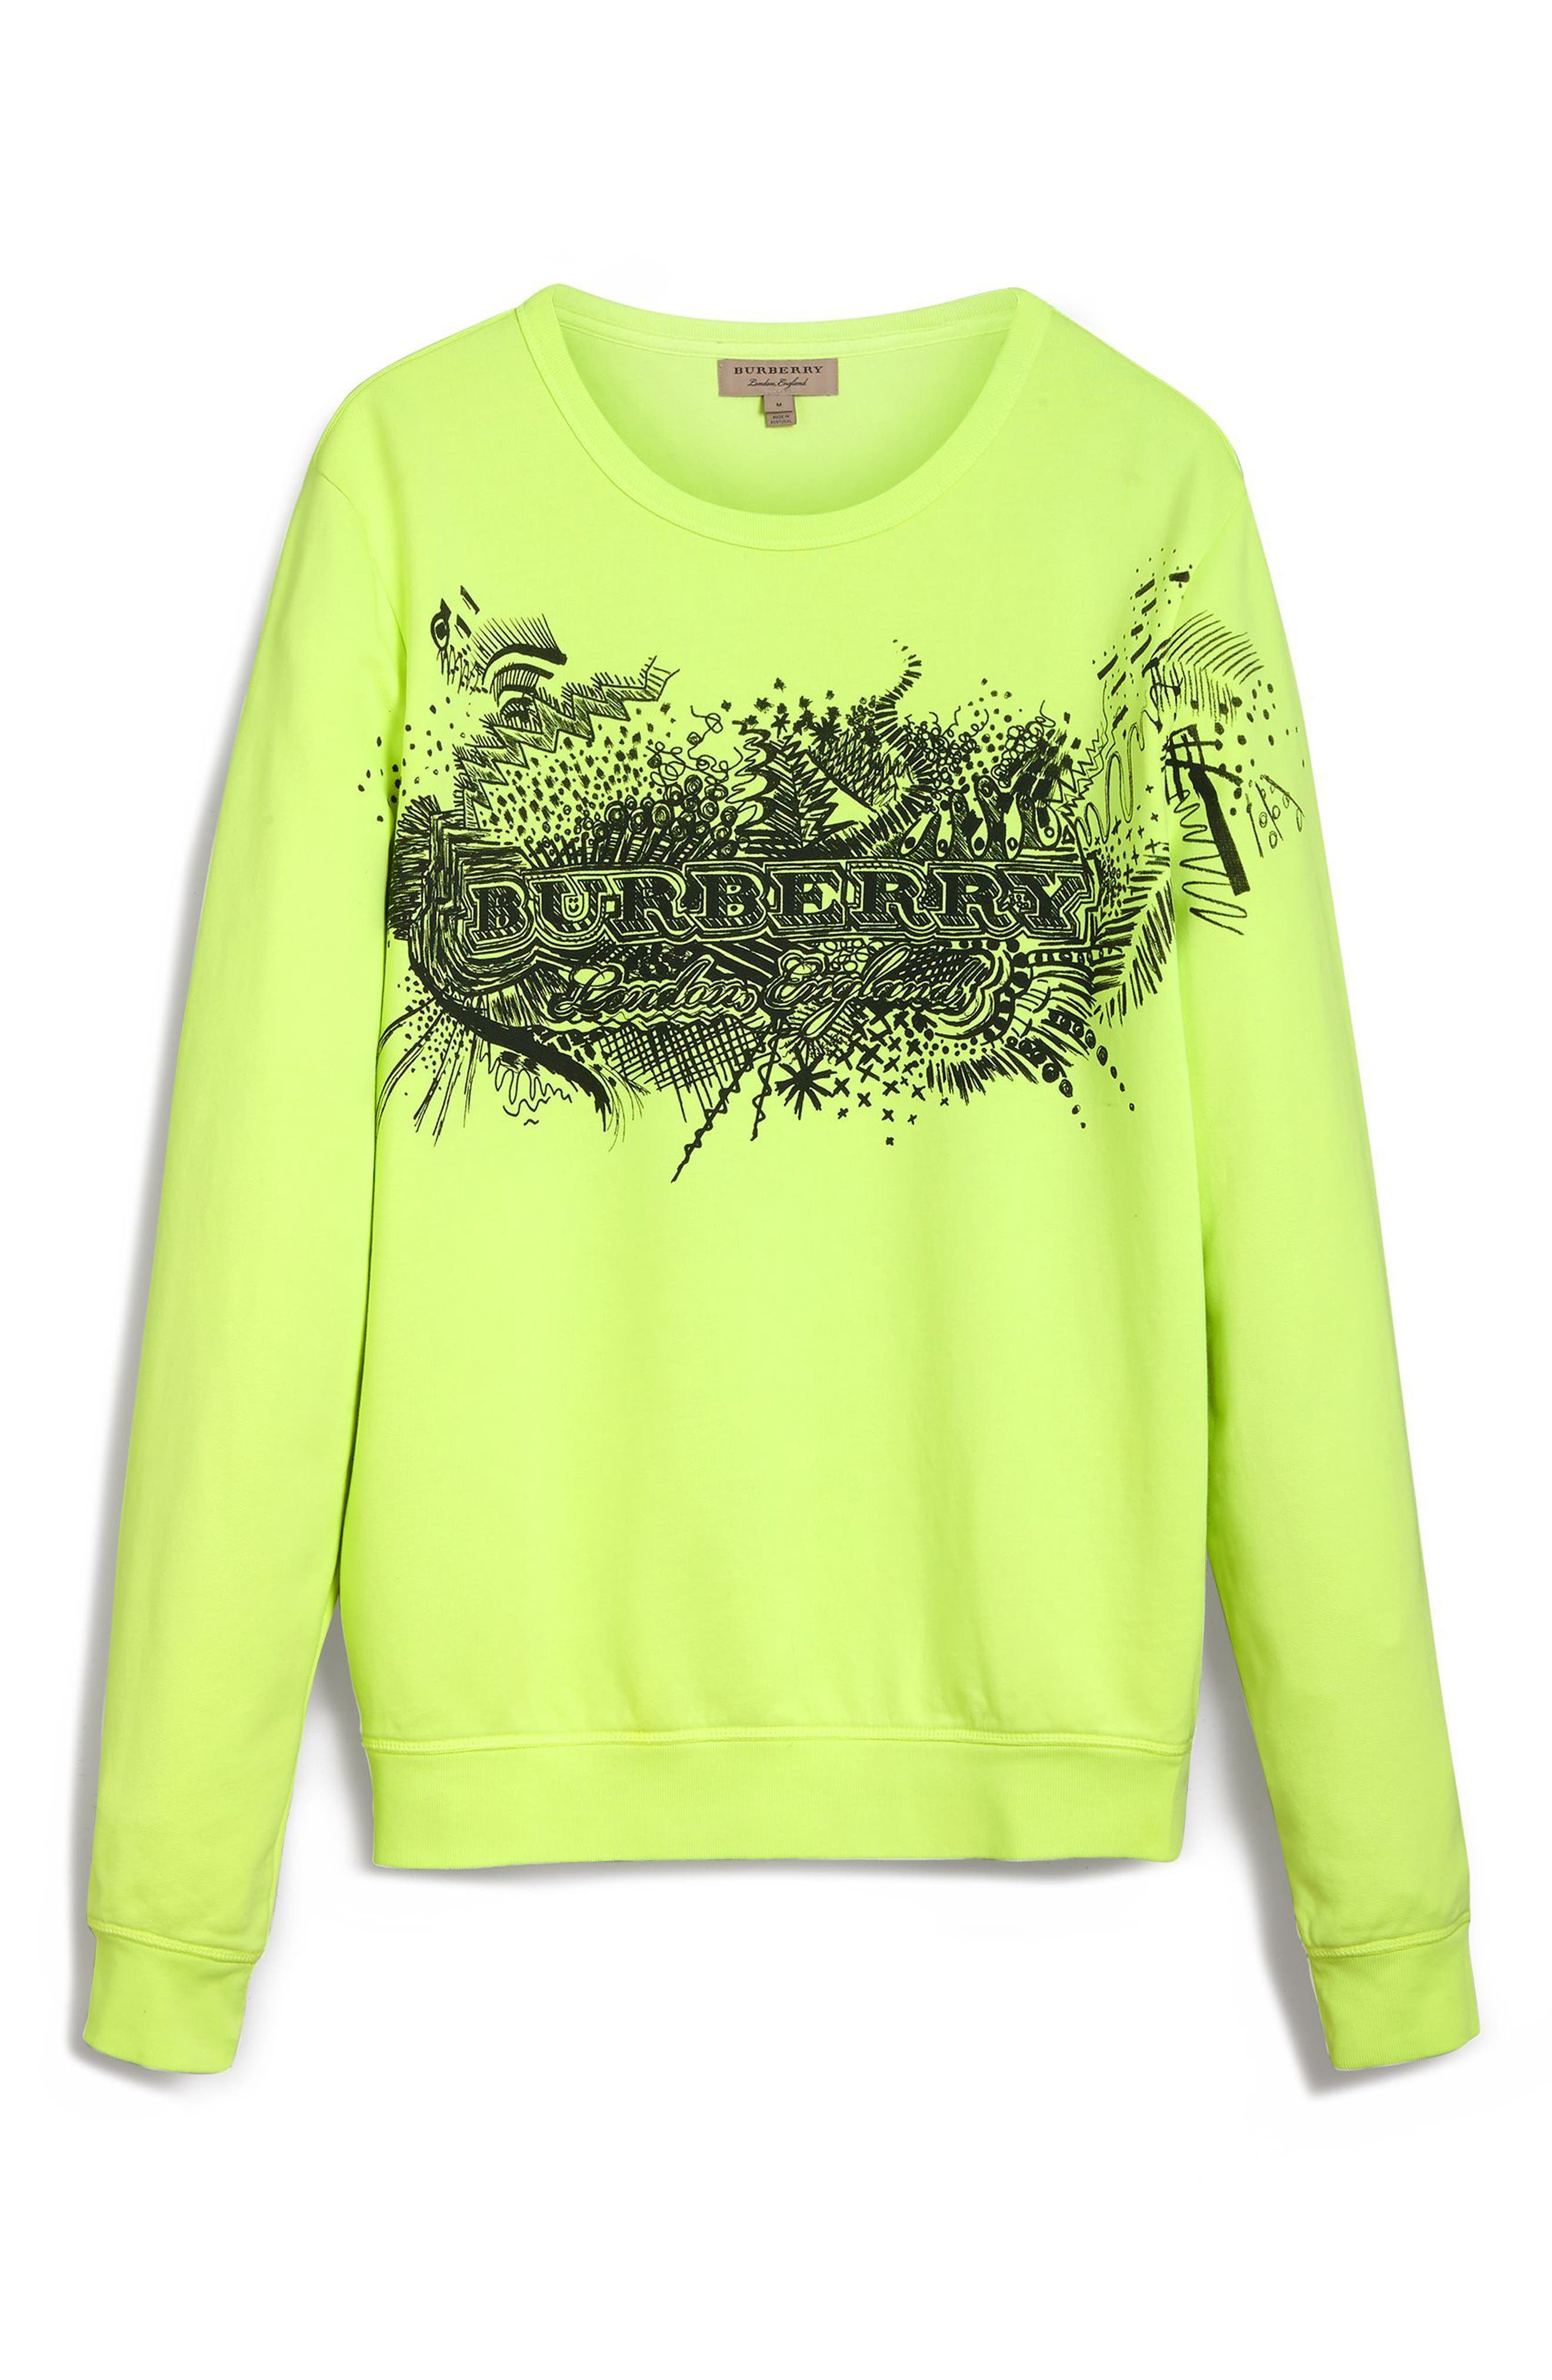 Sauer Doodle Print Cotton Sweatshirt,                             Alternate thumbnail 4, color,                             736